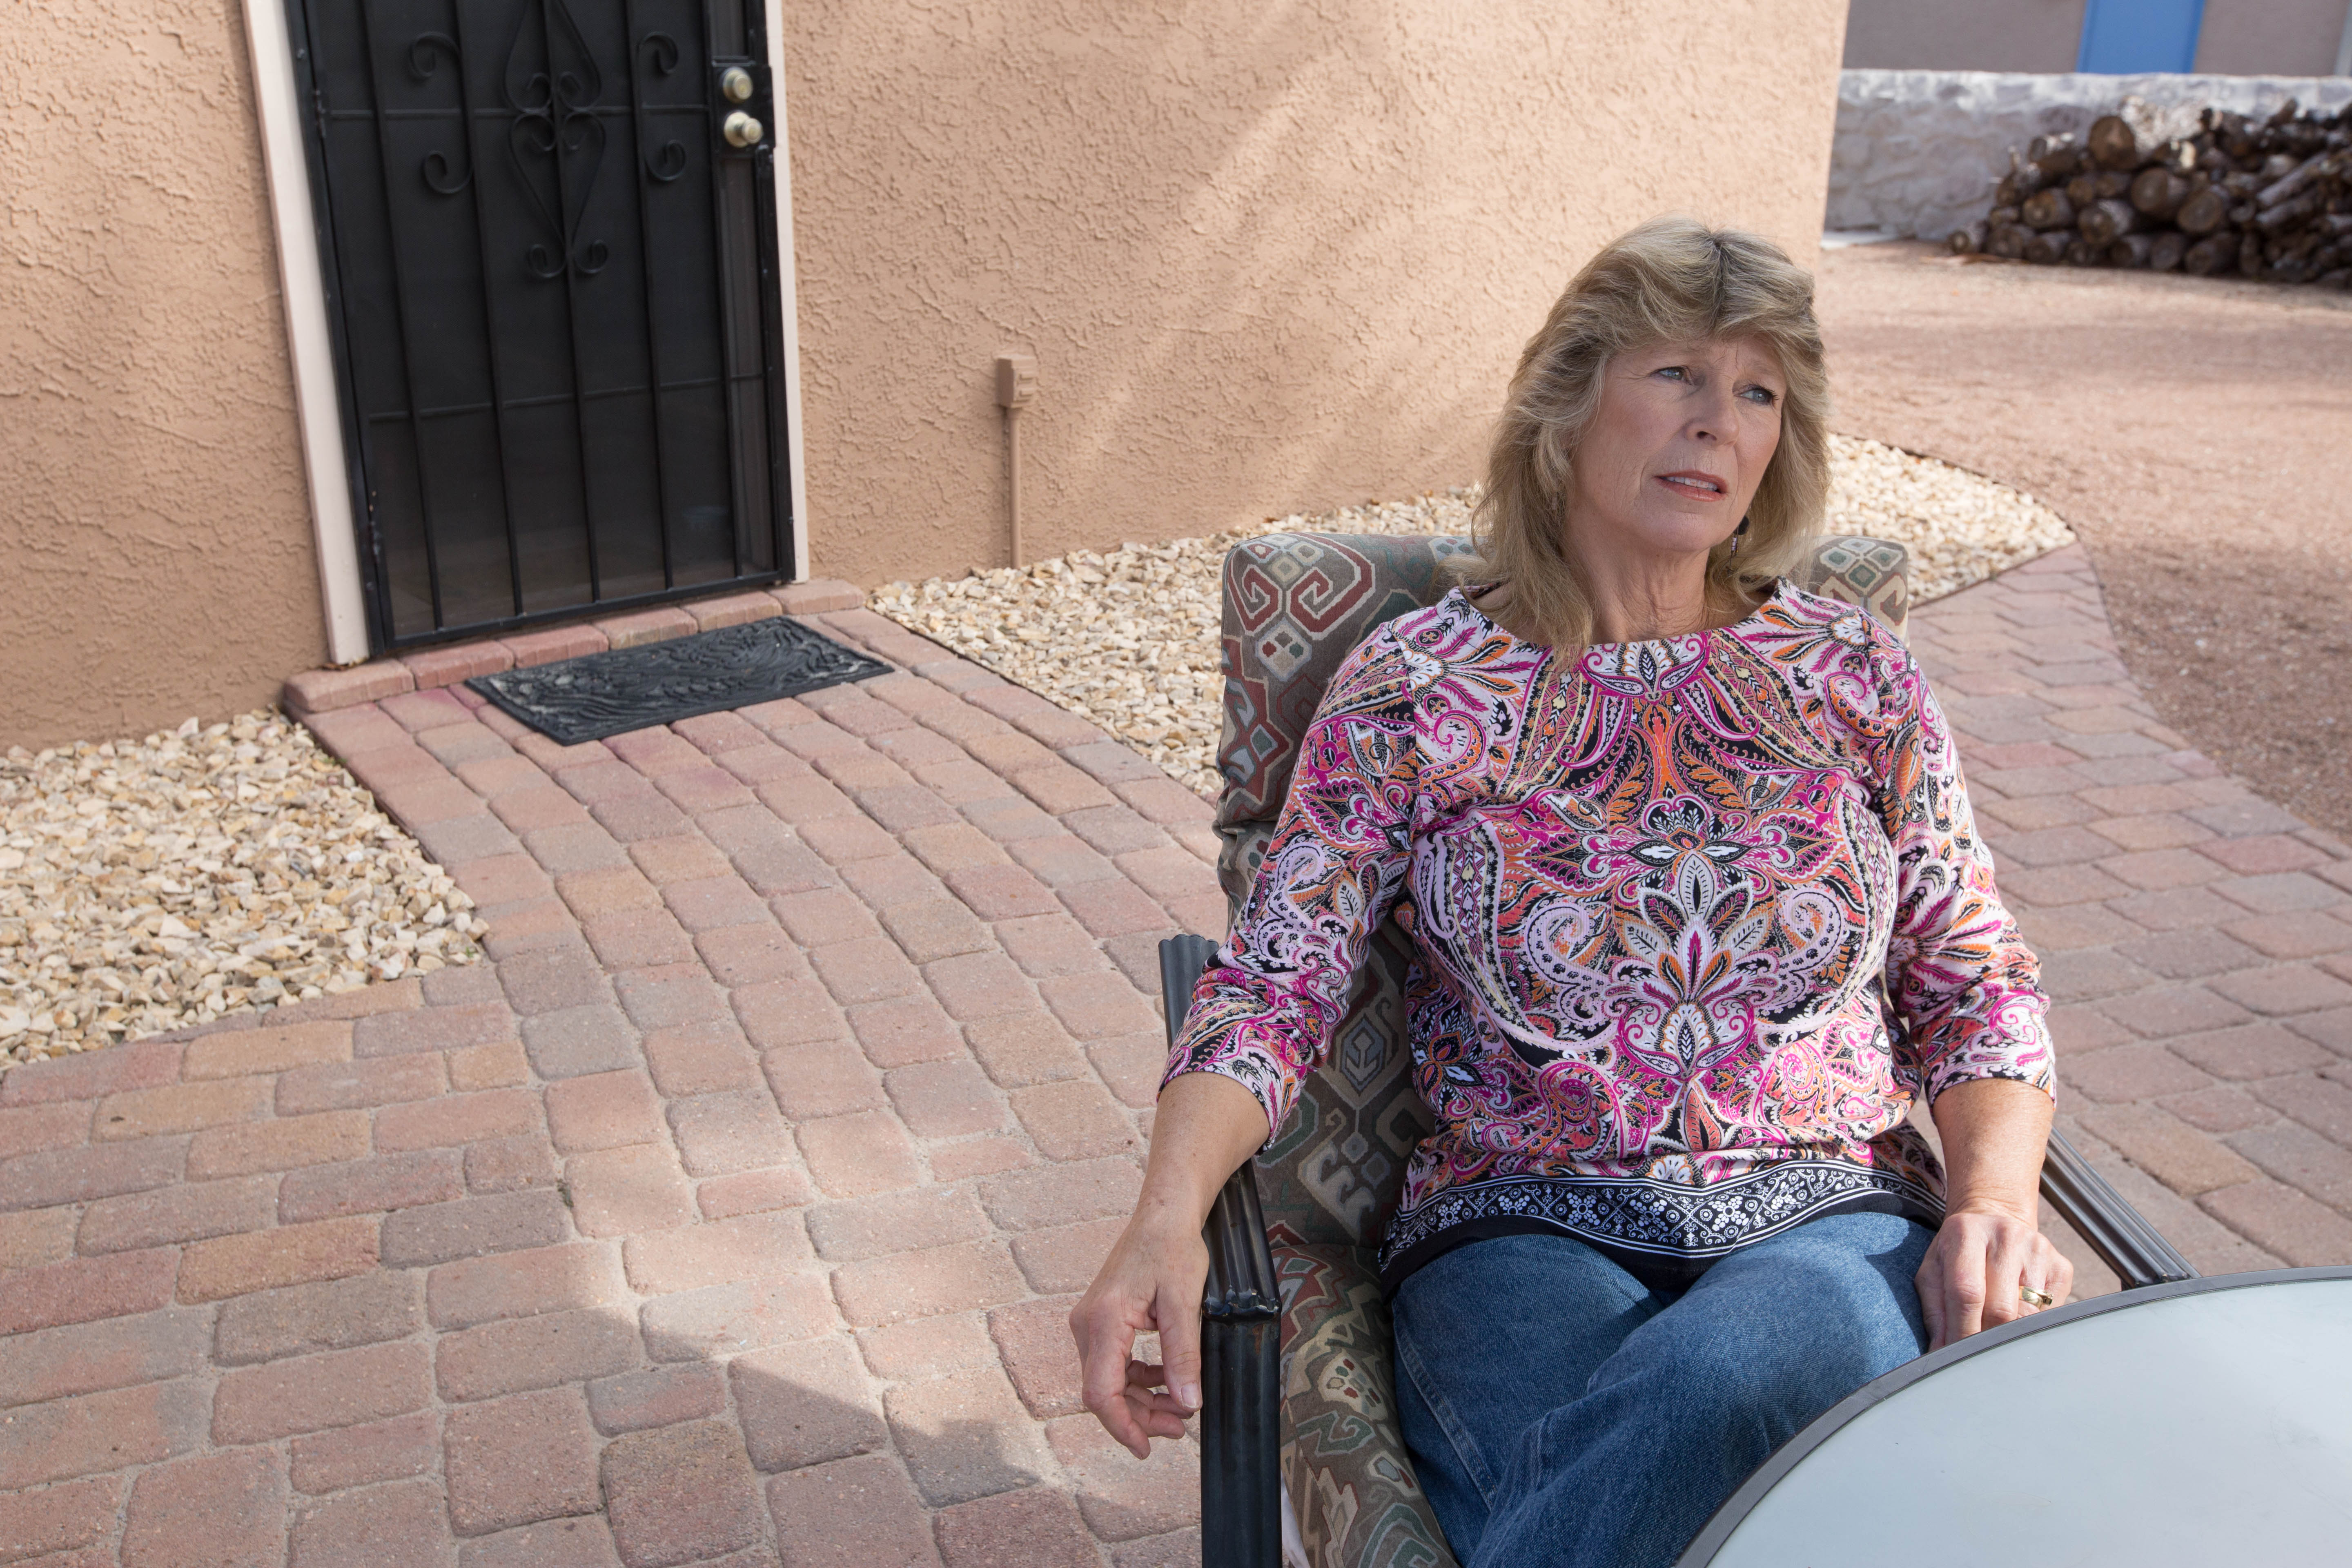 Las Cruces woman inspires legislation after pension horror story | Las Cruces Sun